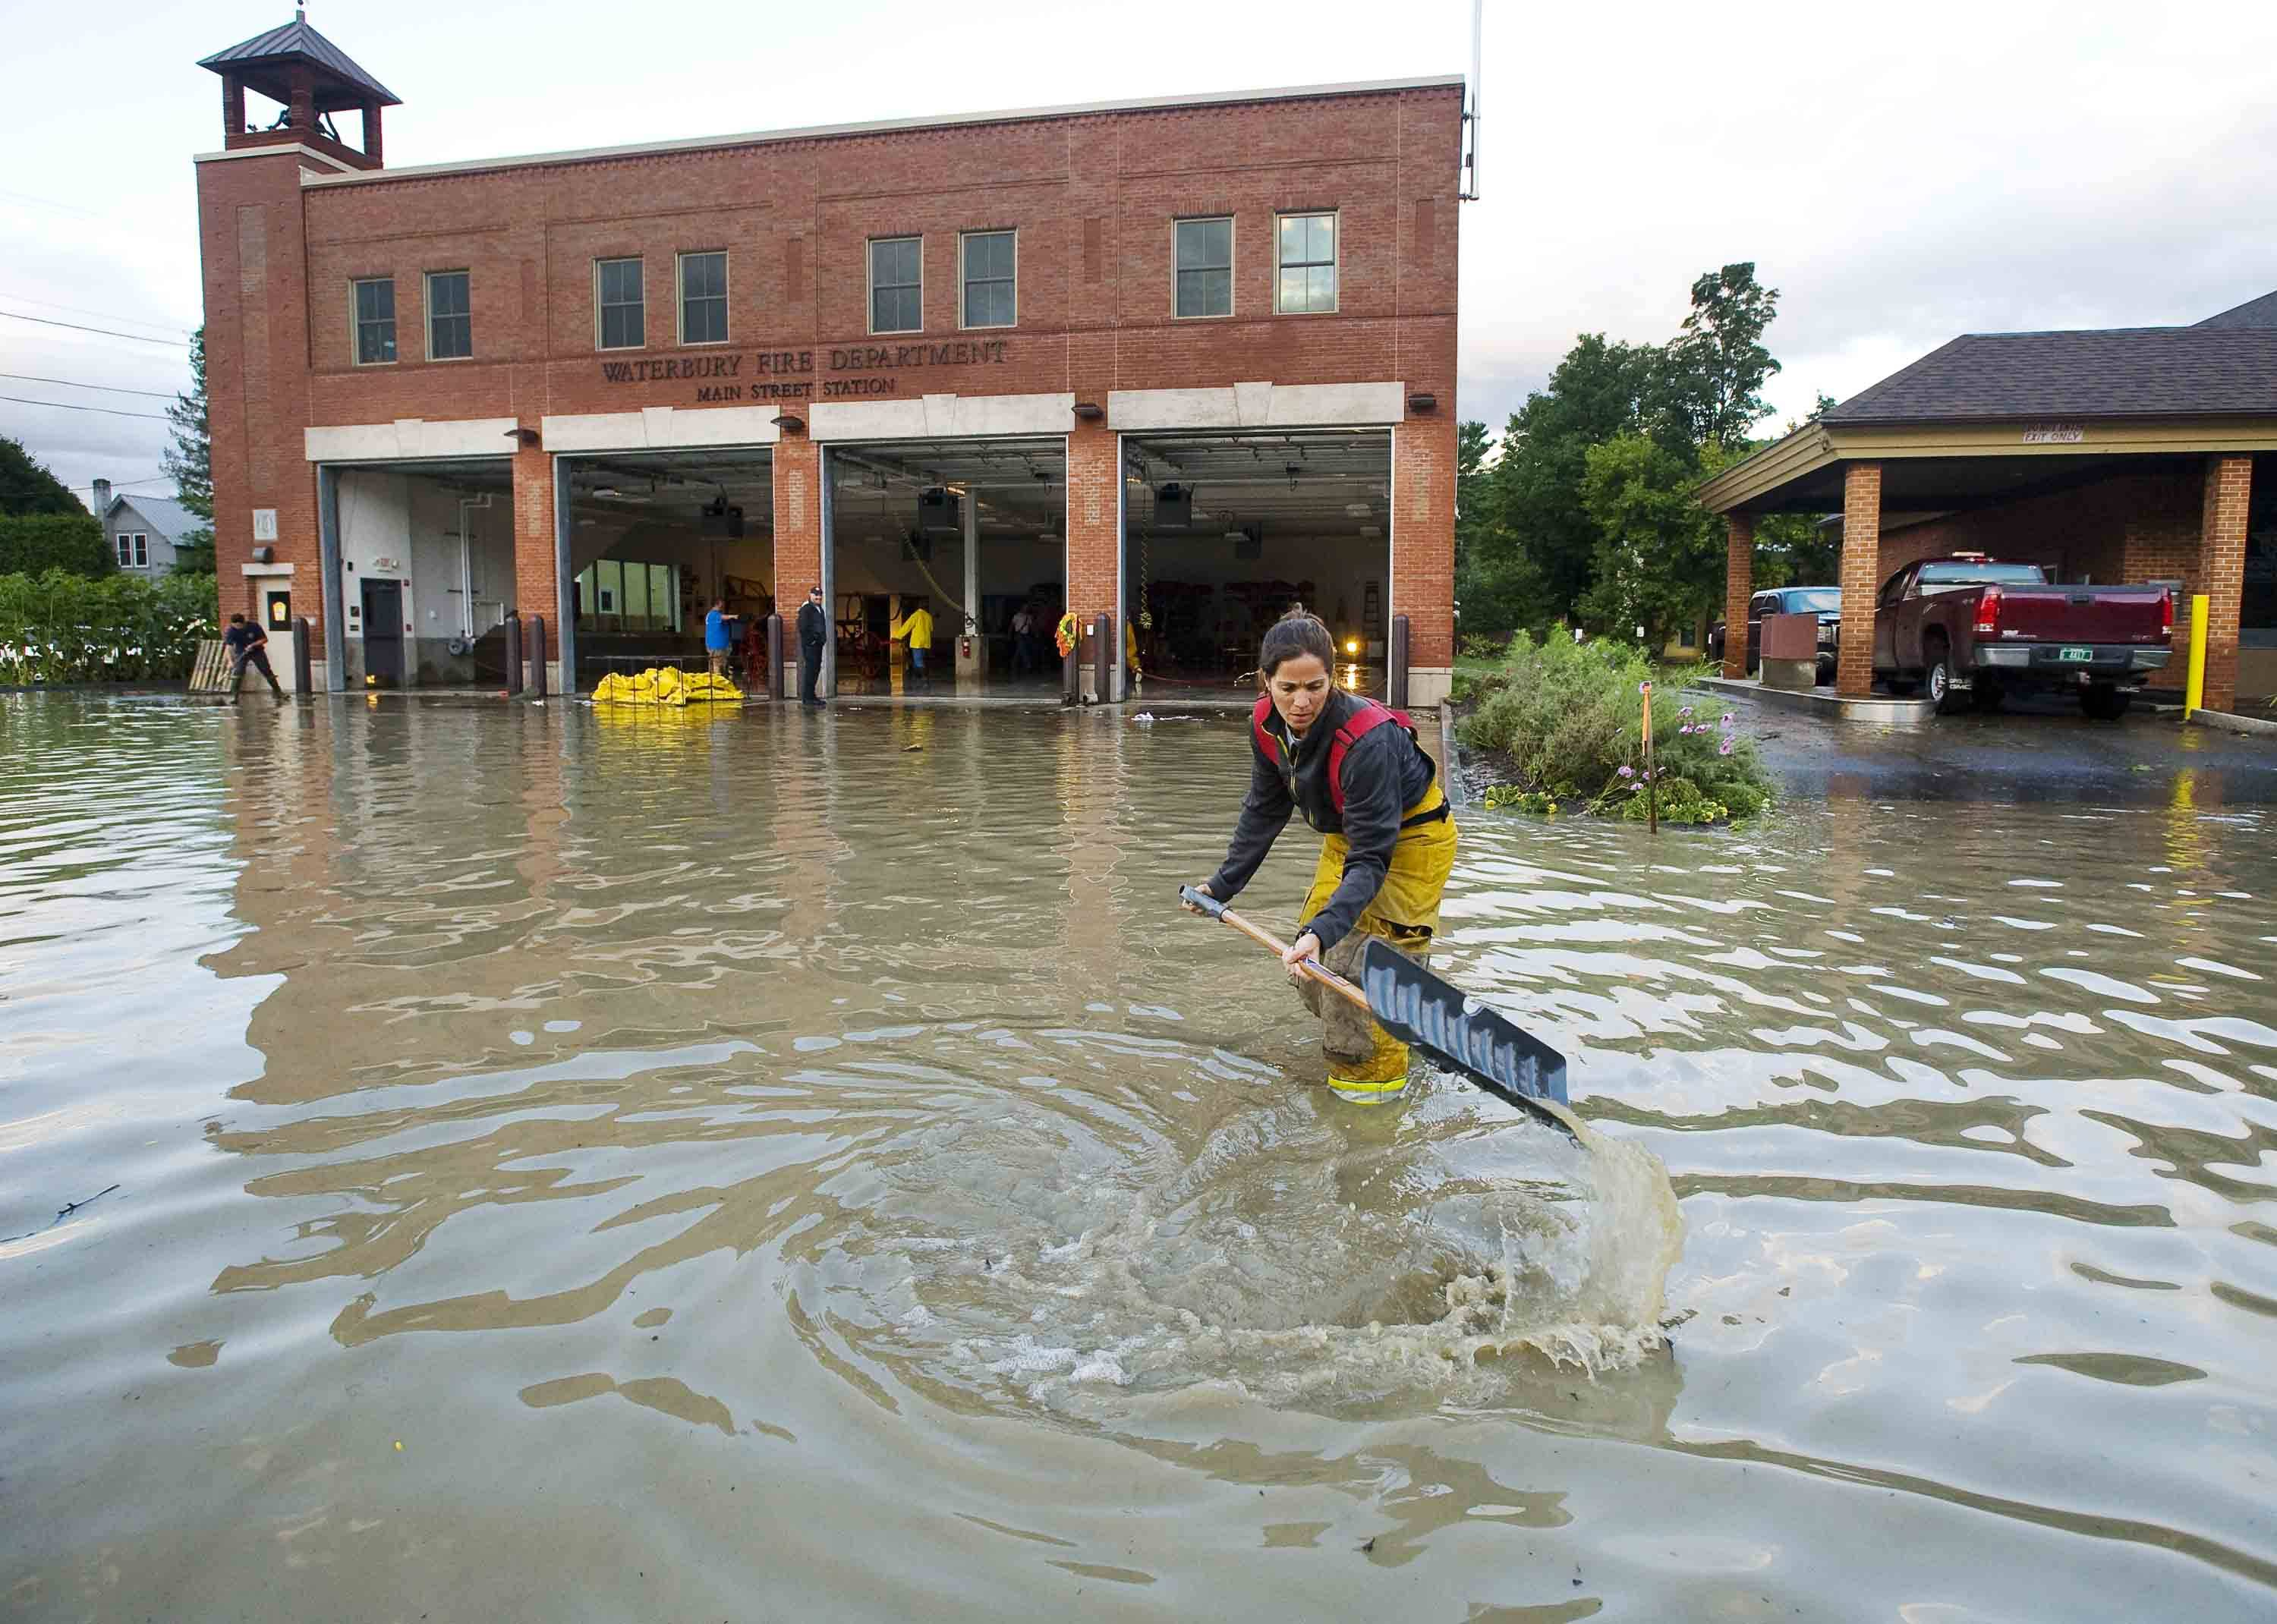 Firefighter Mandy Drake clears a storm drain in front of the fire department in Waterbury, Vt., in the wake of tropical storm Irene on Monday. The building was evacuated as high water from the Winooski River flooded the downtown area Sunday.